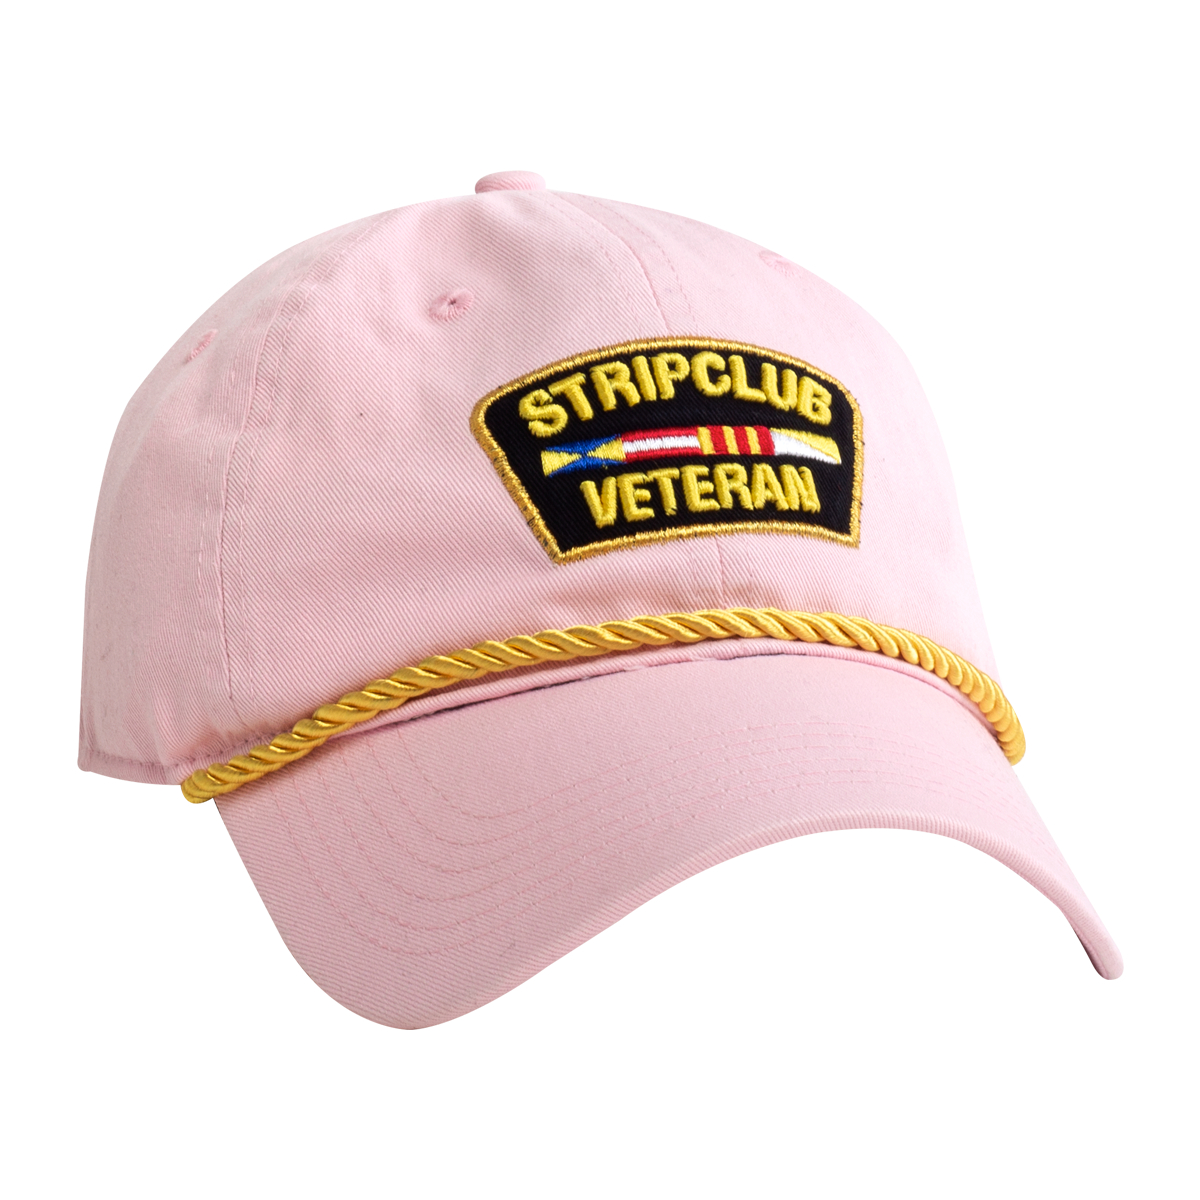 Strip Club Veteran Dad Hat - Pink